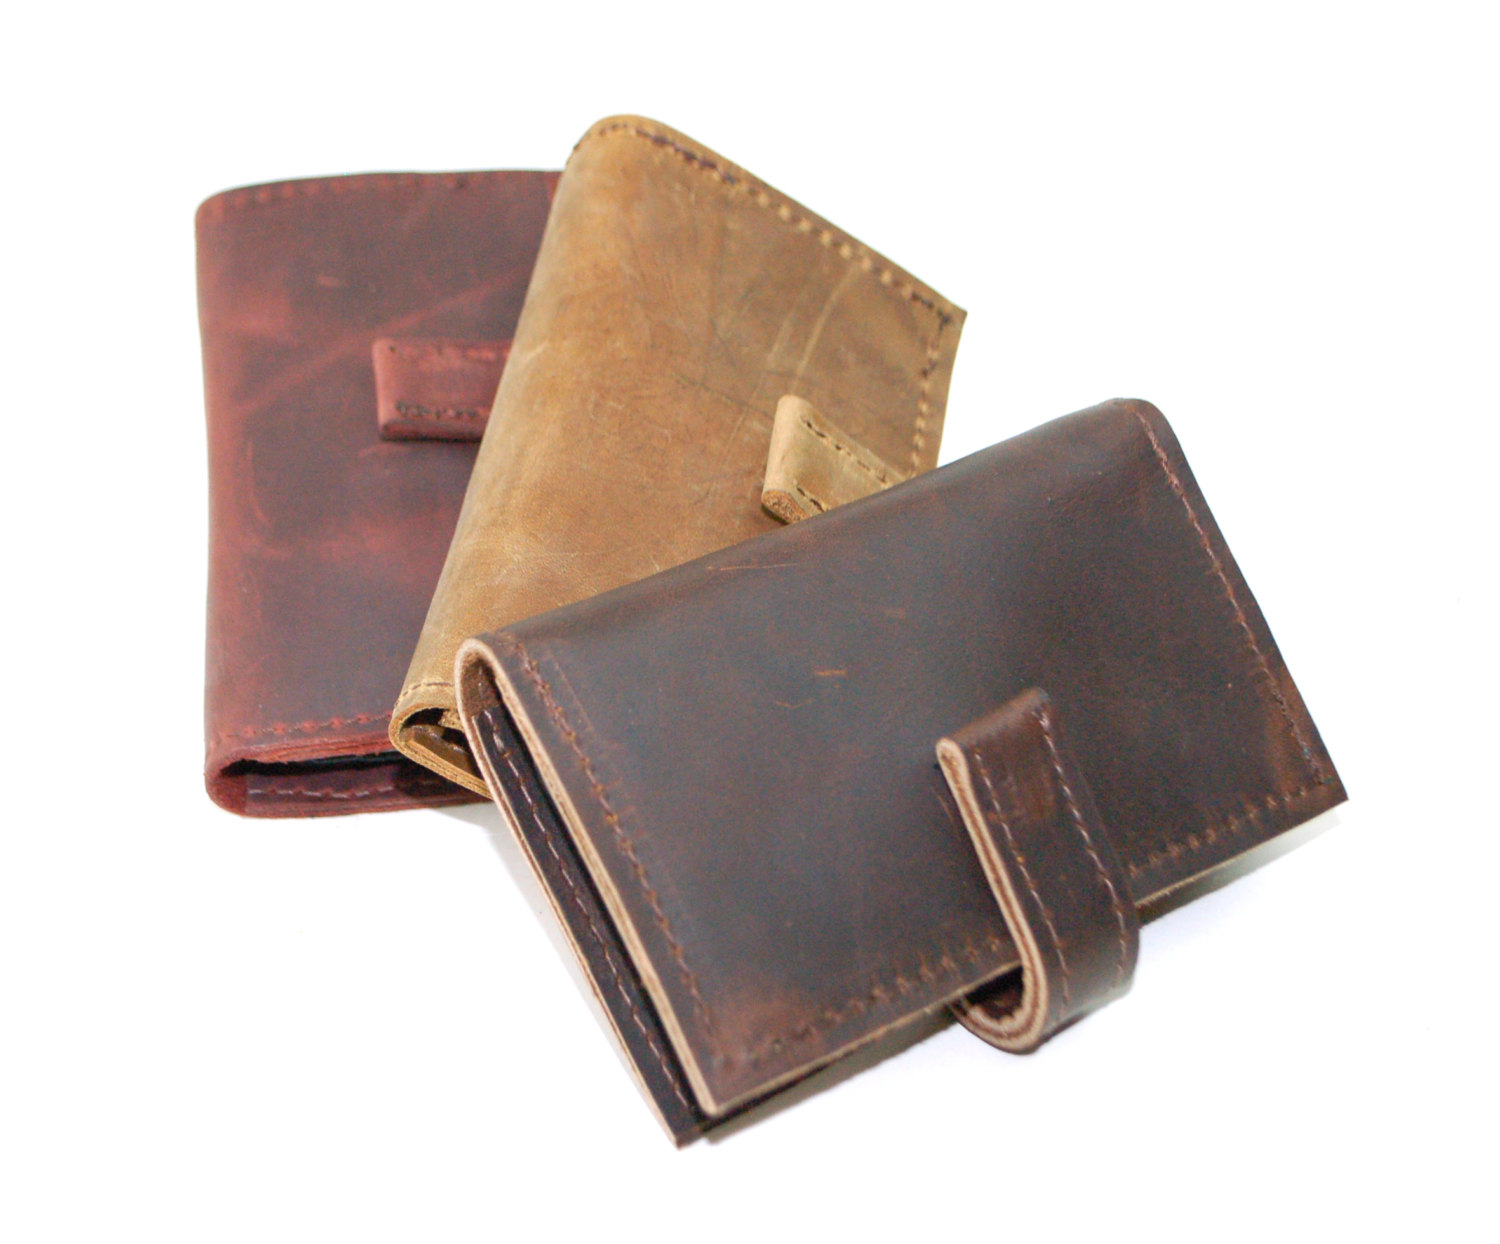 Leather Phone Case >> Divina Denuevo Leather Iphone 5 Case Wallet Distressed Leather